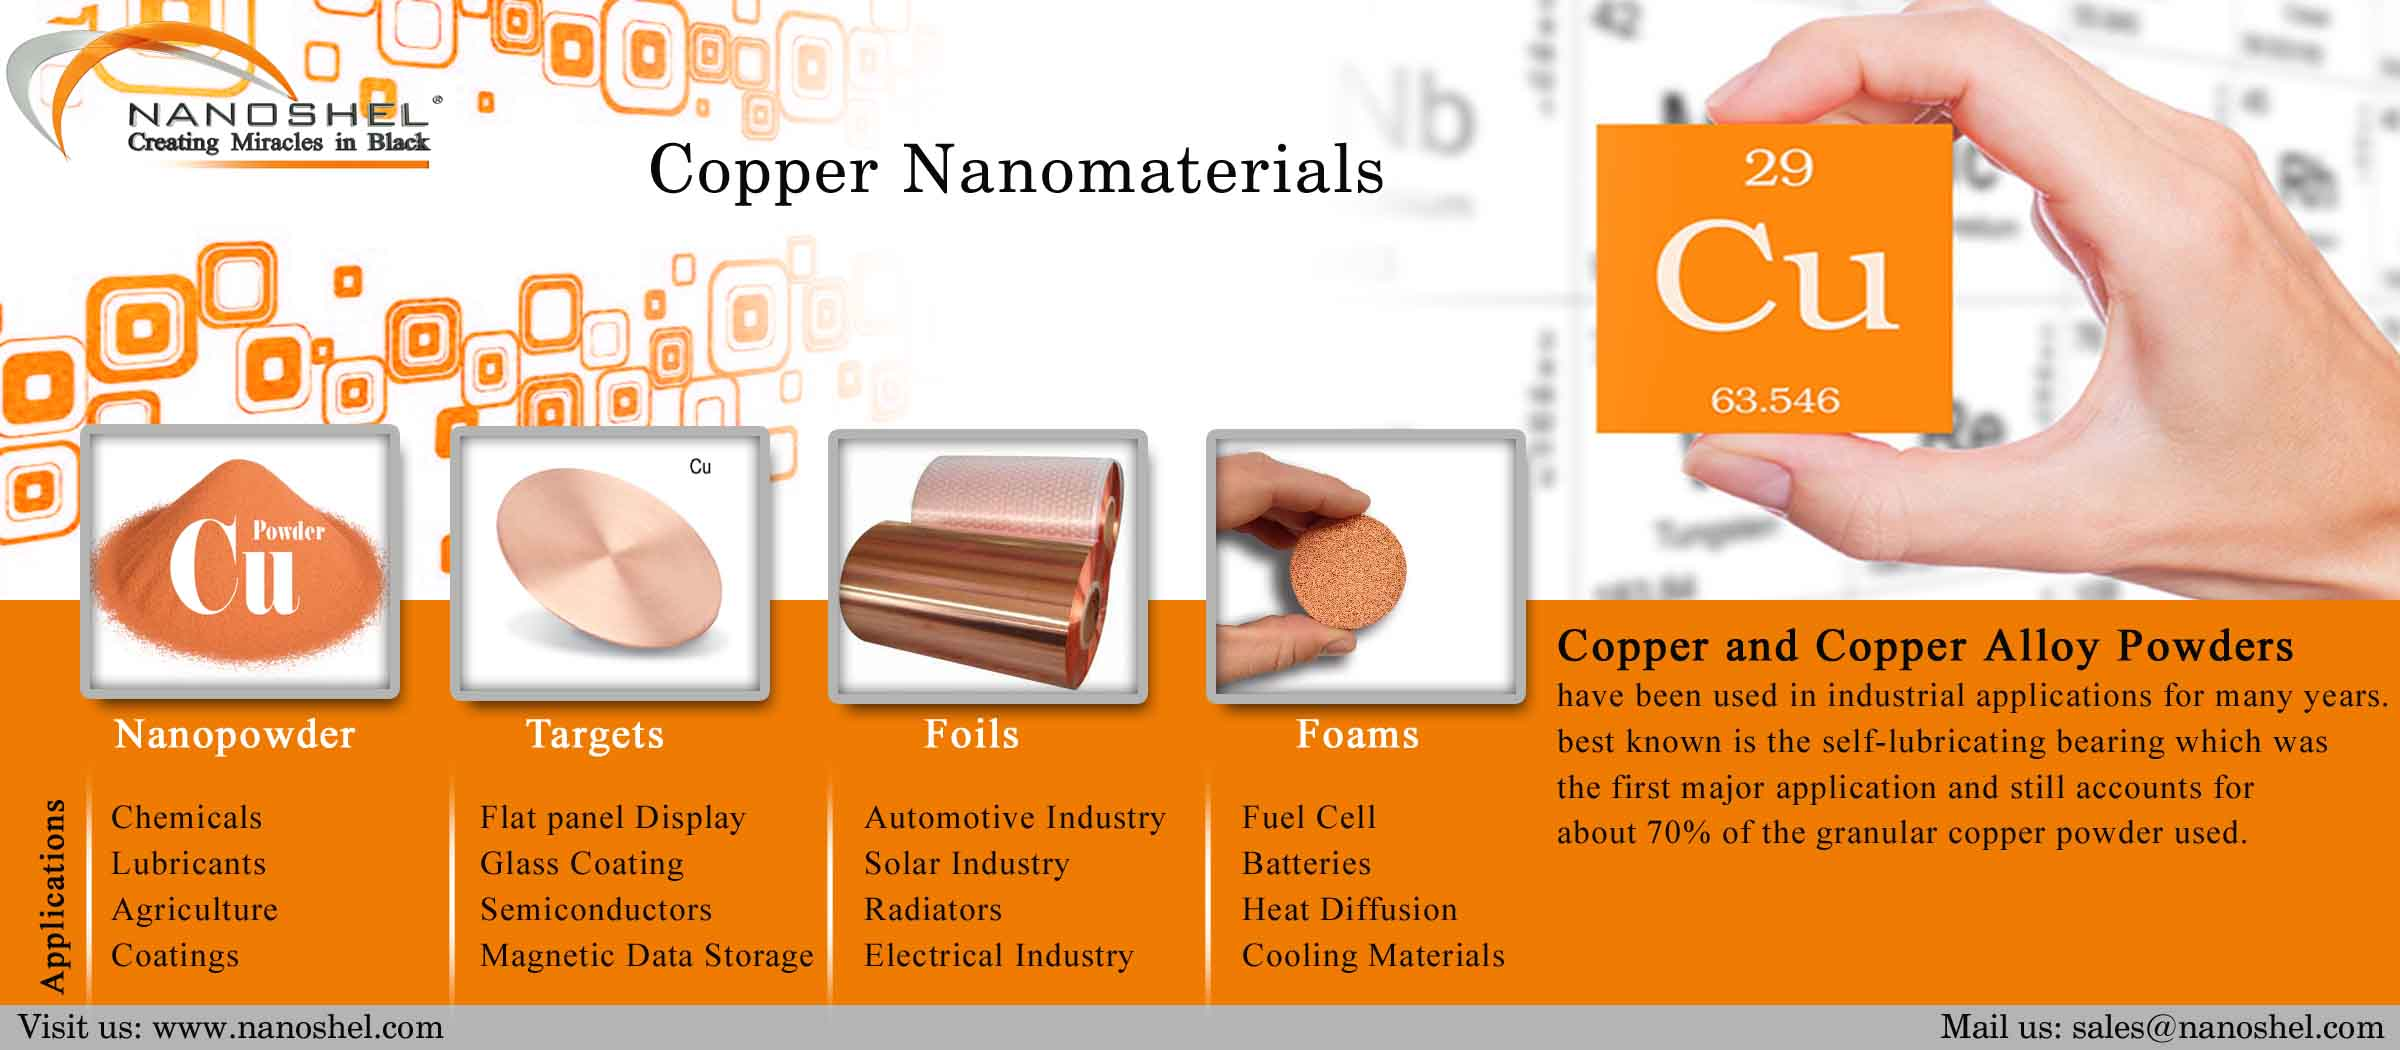 Carbon Coated Copper Nanoparticles